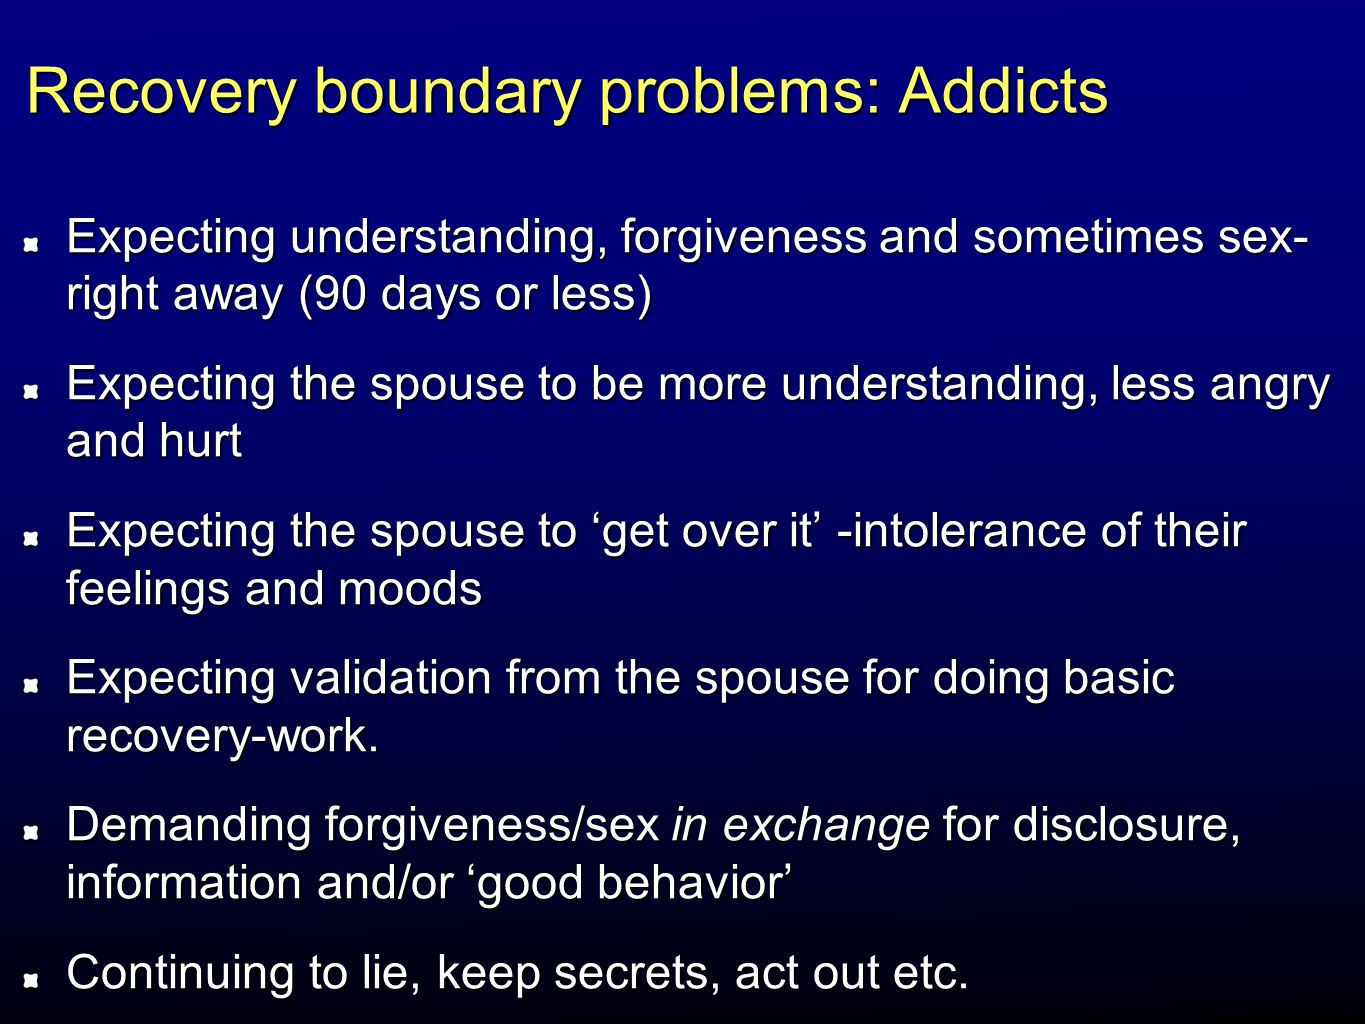 Recovery boundary problems: Addicts